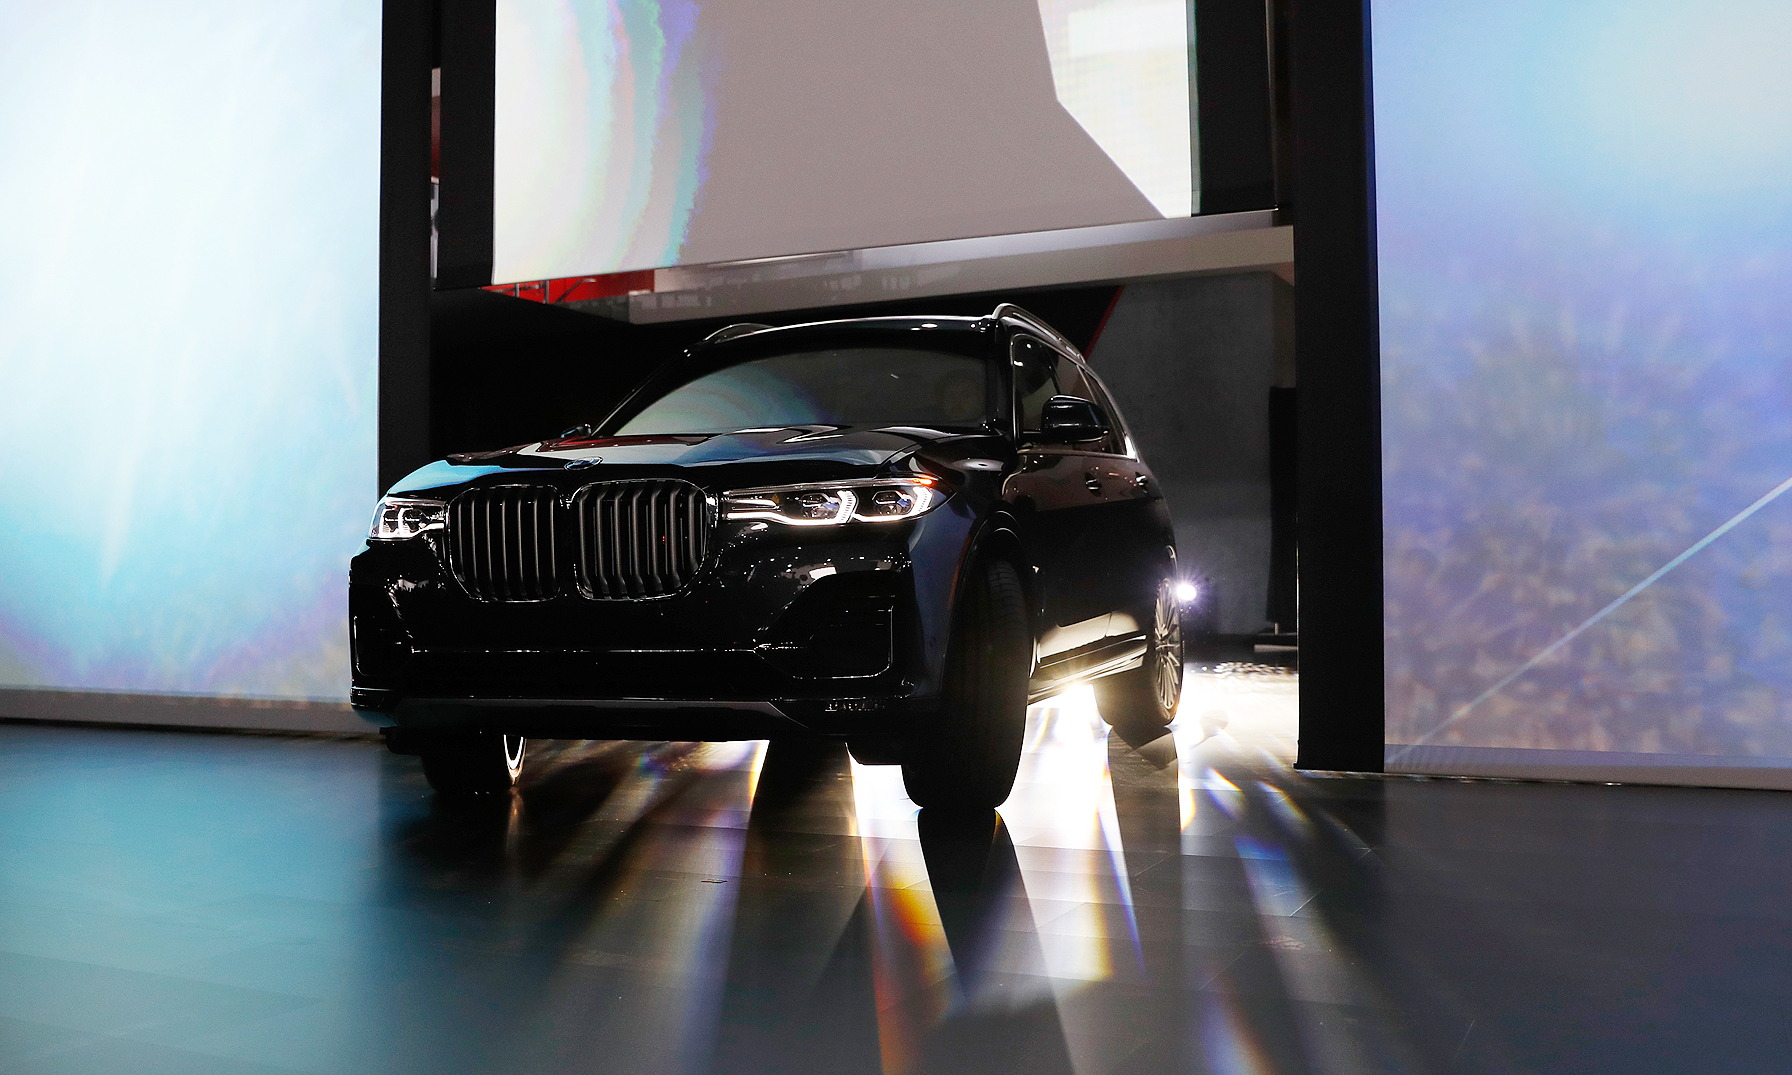 Bmw After 10 Year Wait Rolls Out 3 Row Monster Suv